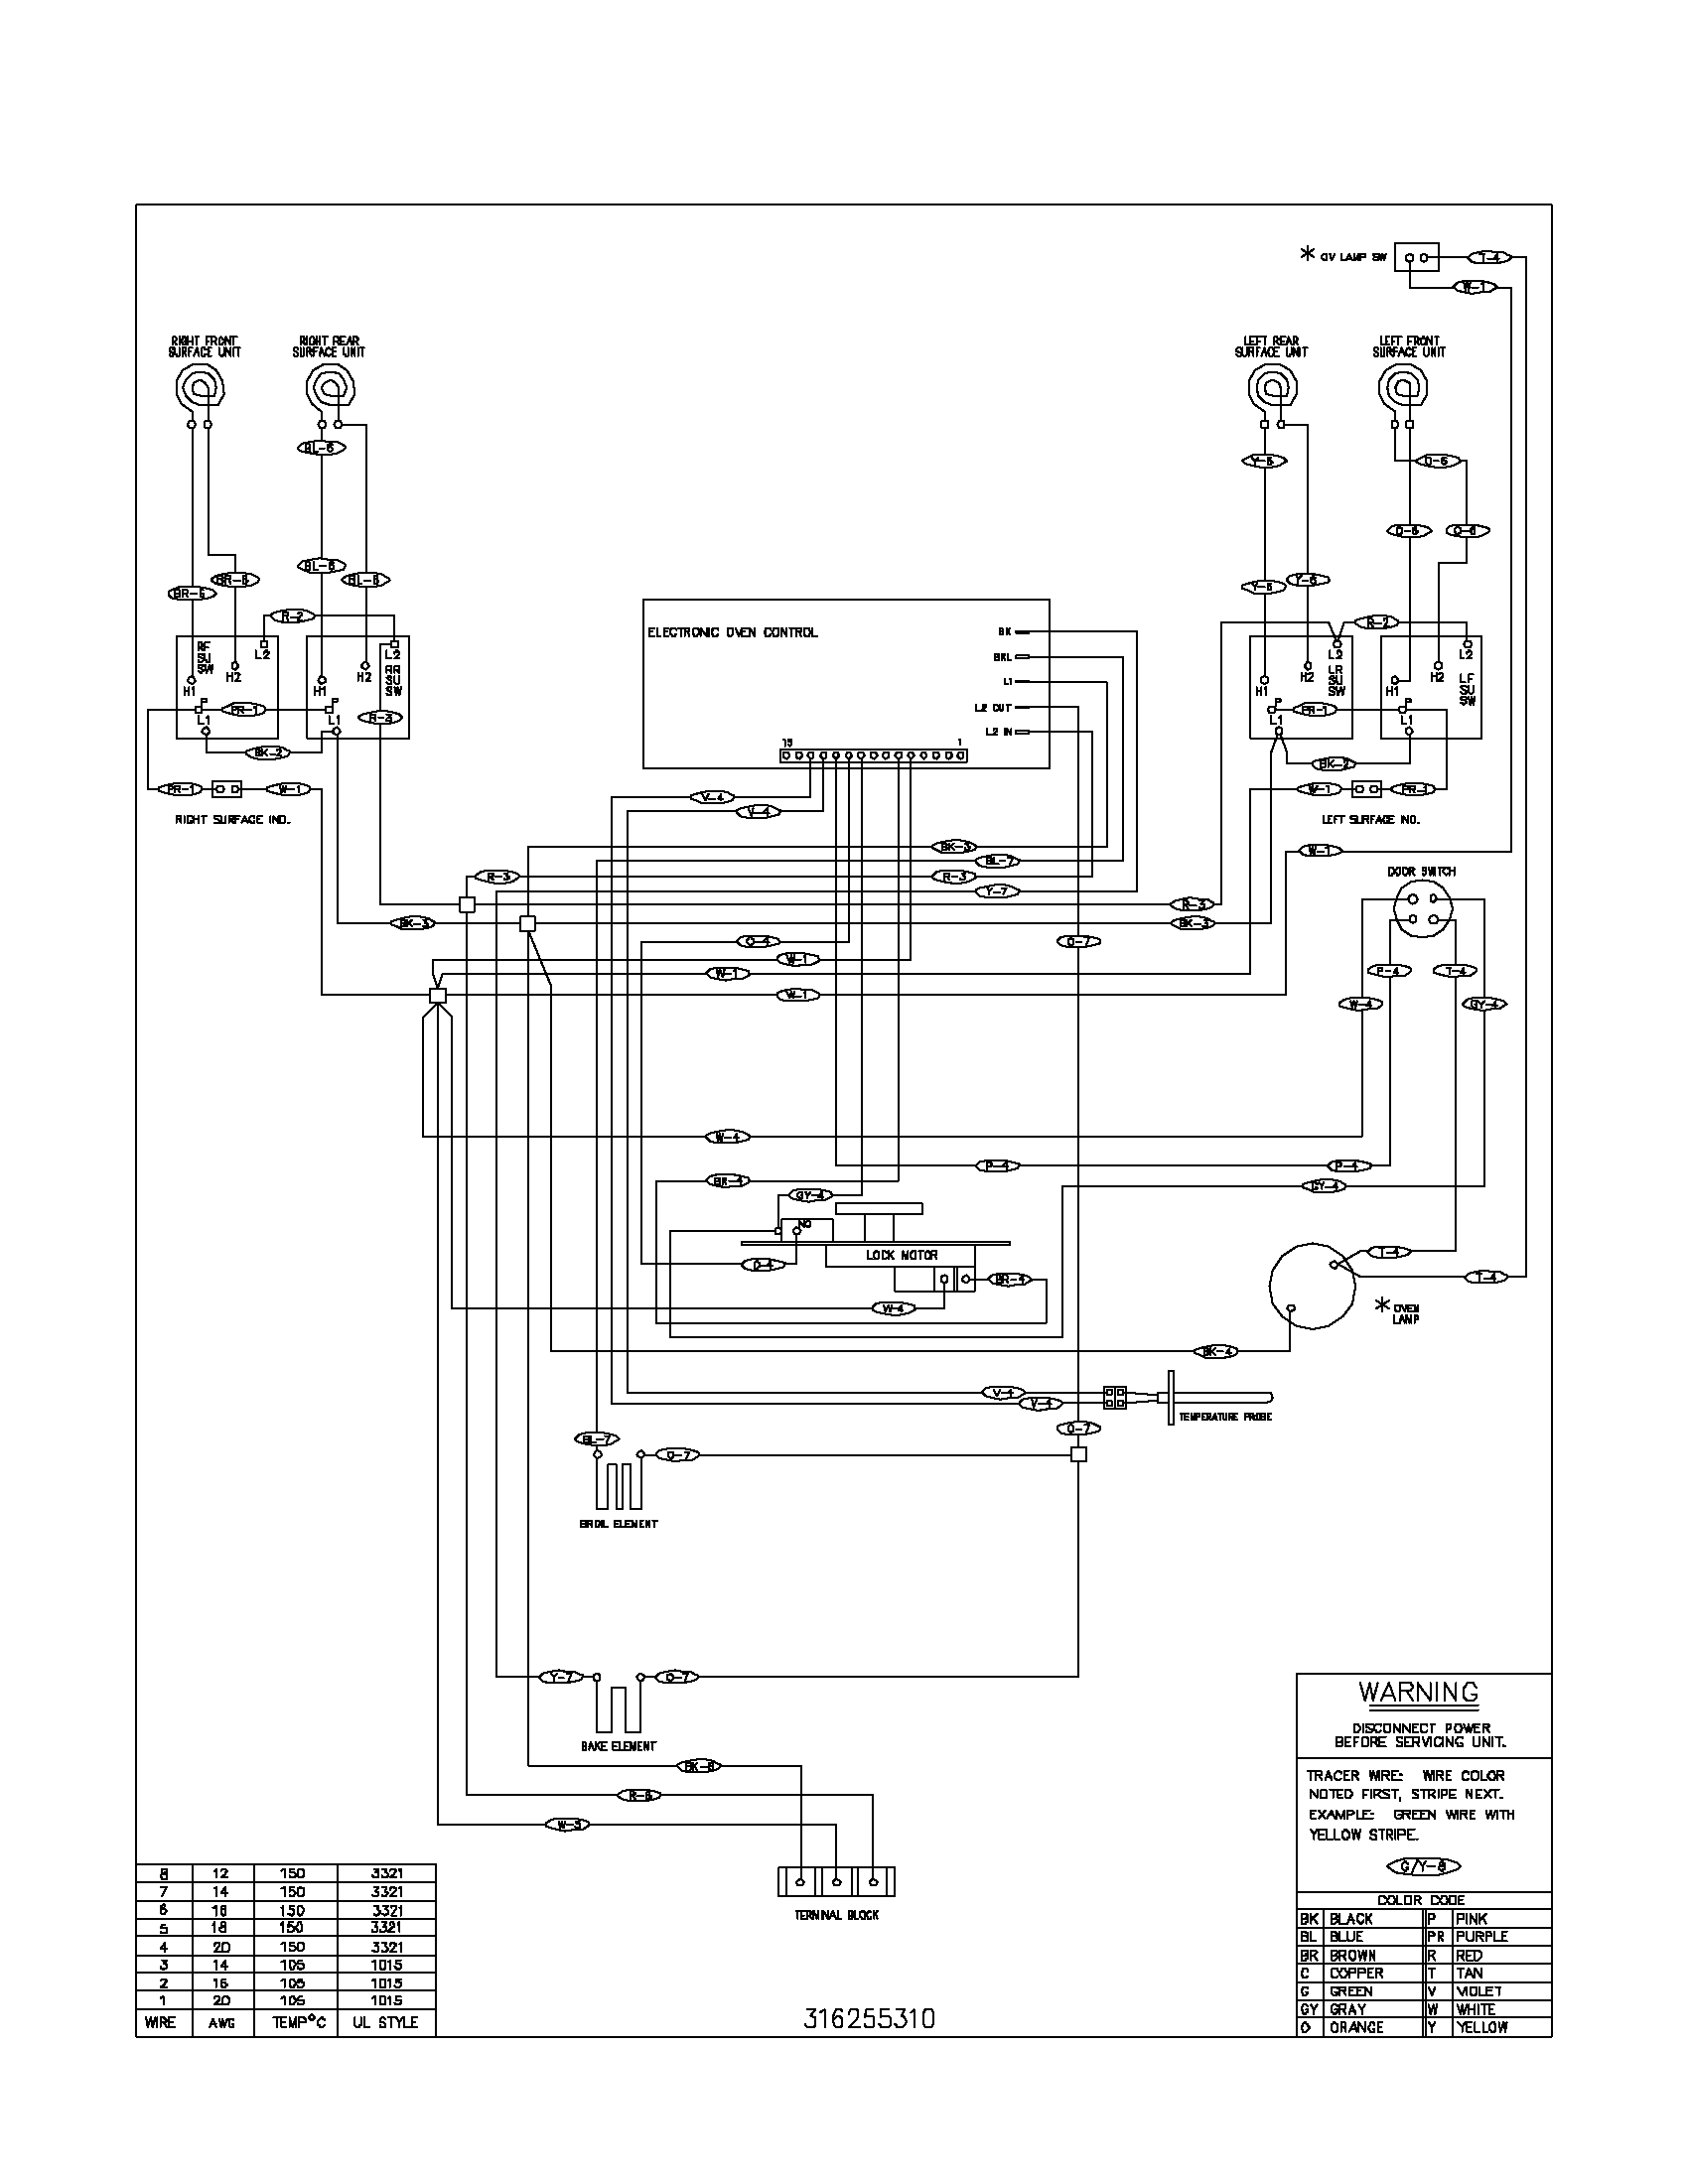 wiring diagram for electric range the wiring diagram wiring an electric stove harness wiring wiring diagrams for wiring diagram